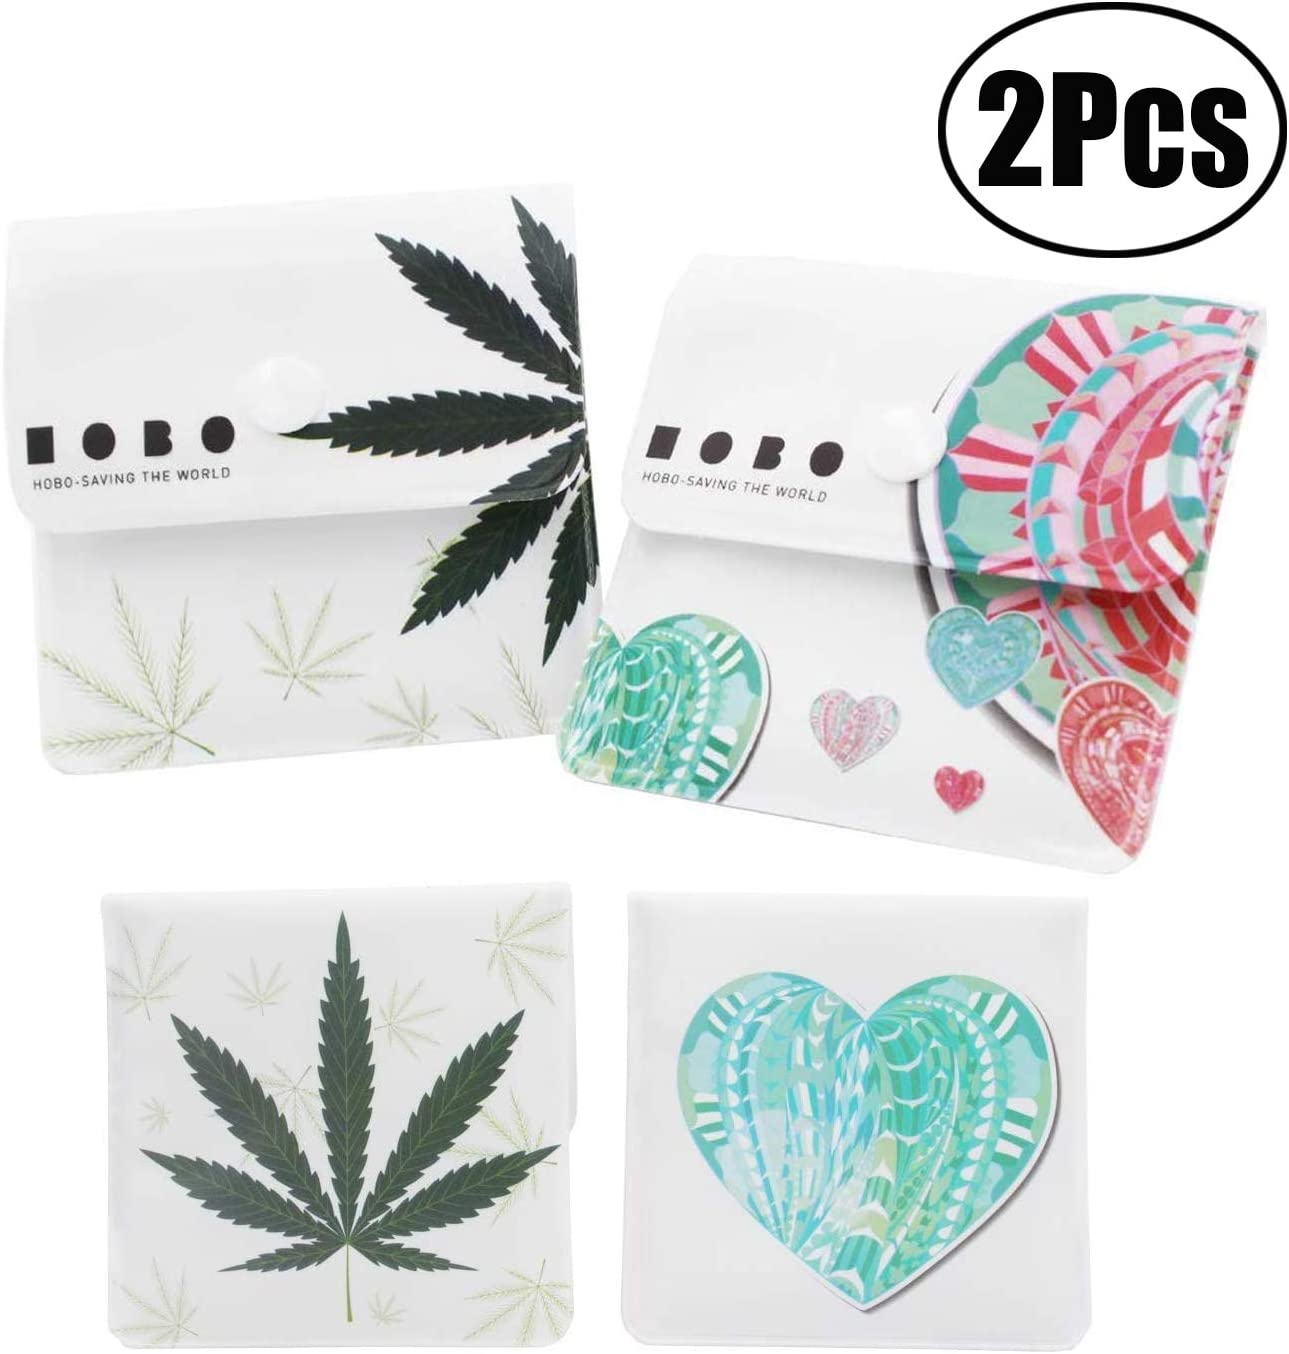 Portable Compact Scent Free Uniquely Designed Green Maple Leaf and Green Heart Pattern JZZJ 2 Pocket Ashtray Grey Bags Fireproof PVC